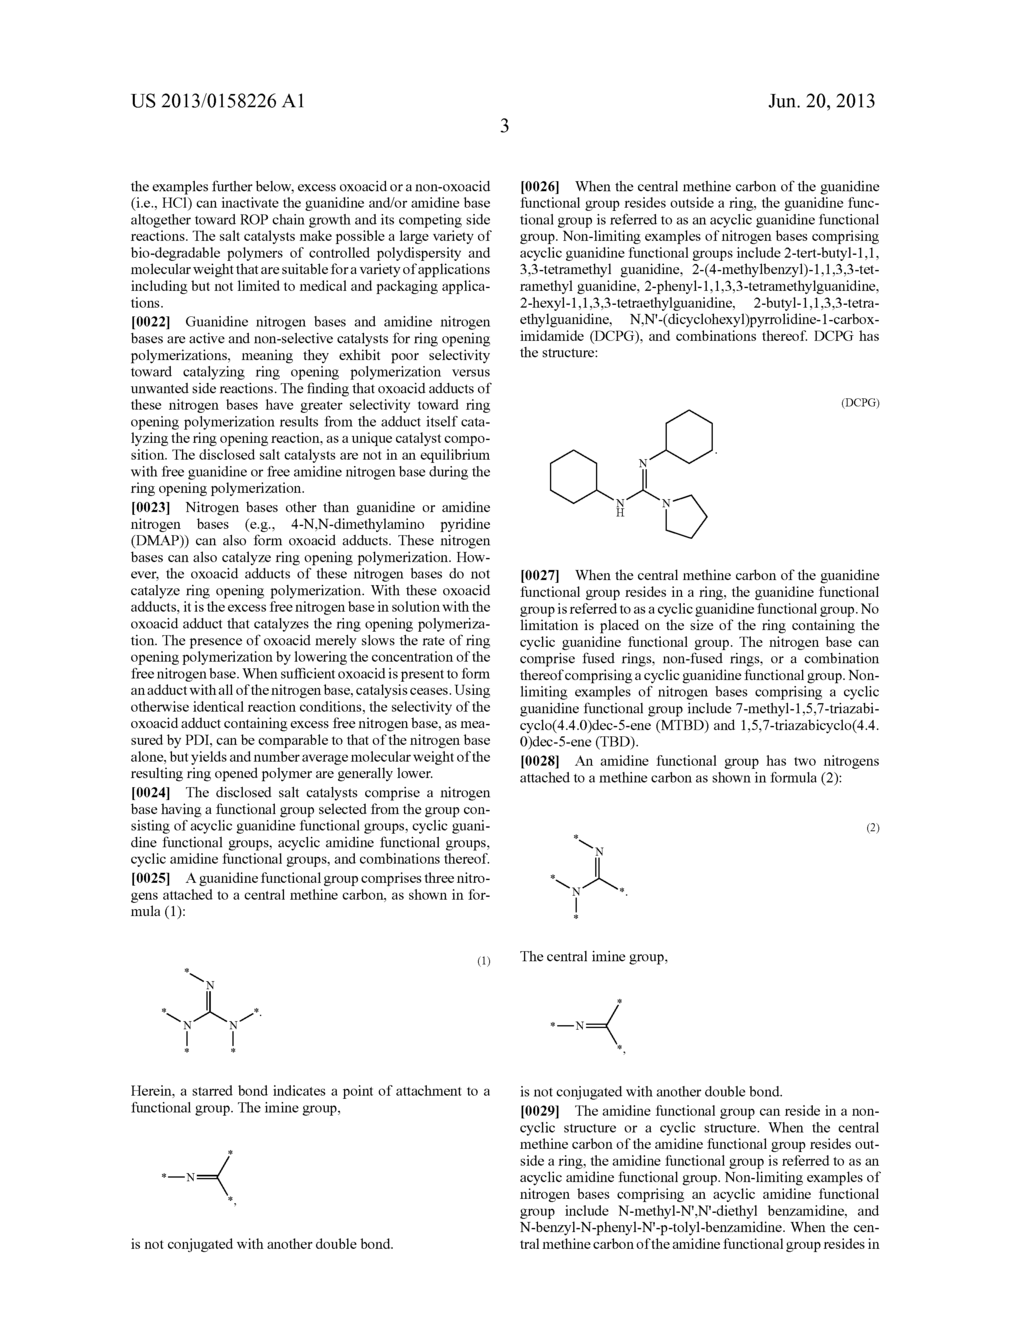 METHODS OF RING OPENING POLYMERIZATION AND CATALYSTS THEREFOR - diagram, schematic, and image 10